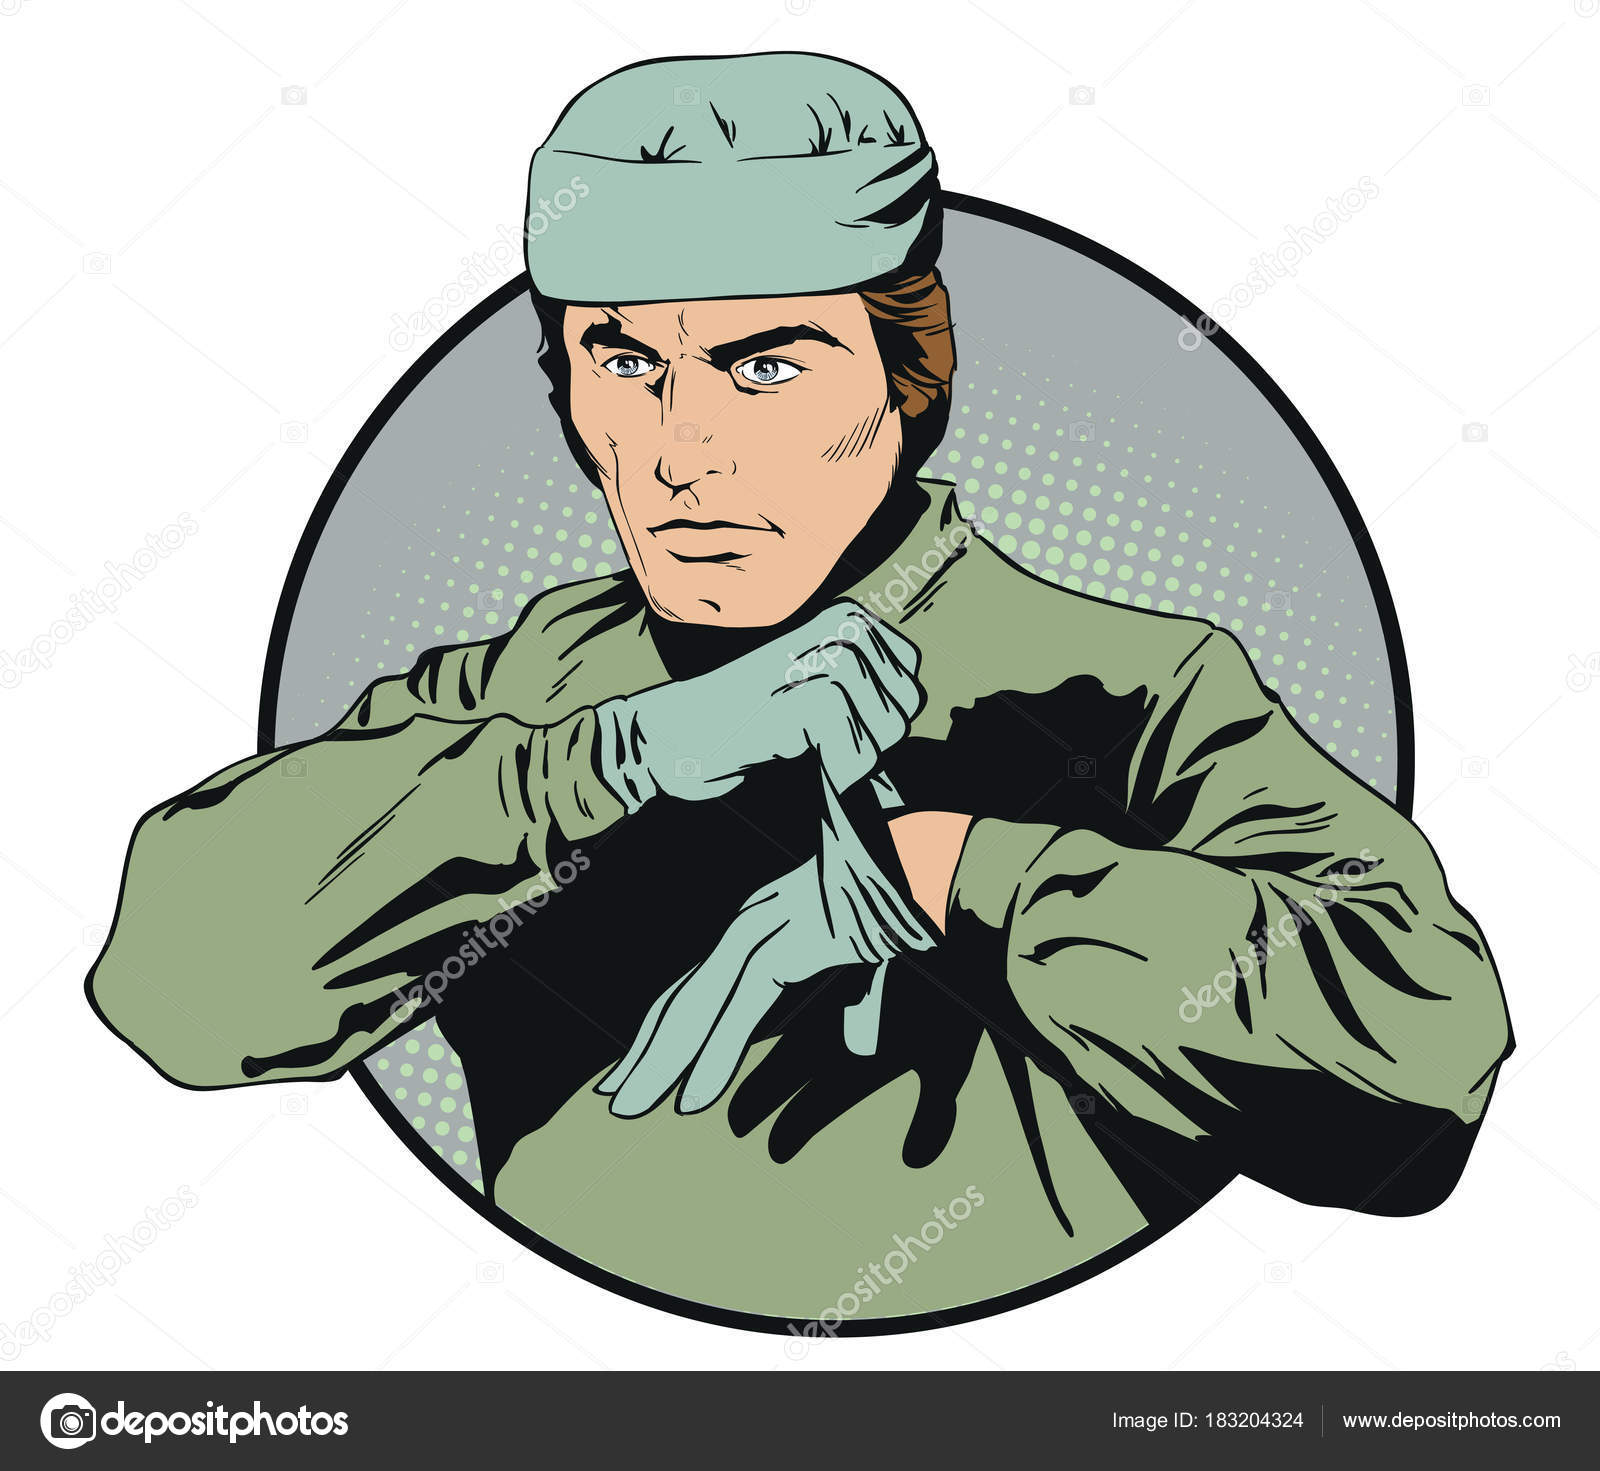 Stock Illustration People In Retro Style Pop Art And Vintage Advertising Male Doctor Puts On Gloves Vector By Bomg11